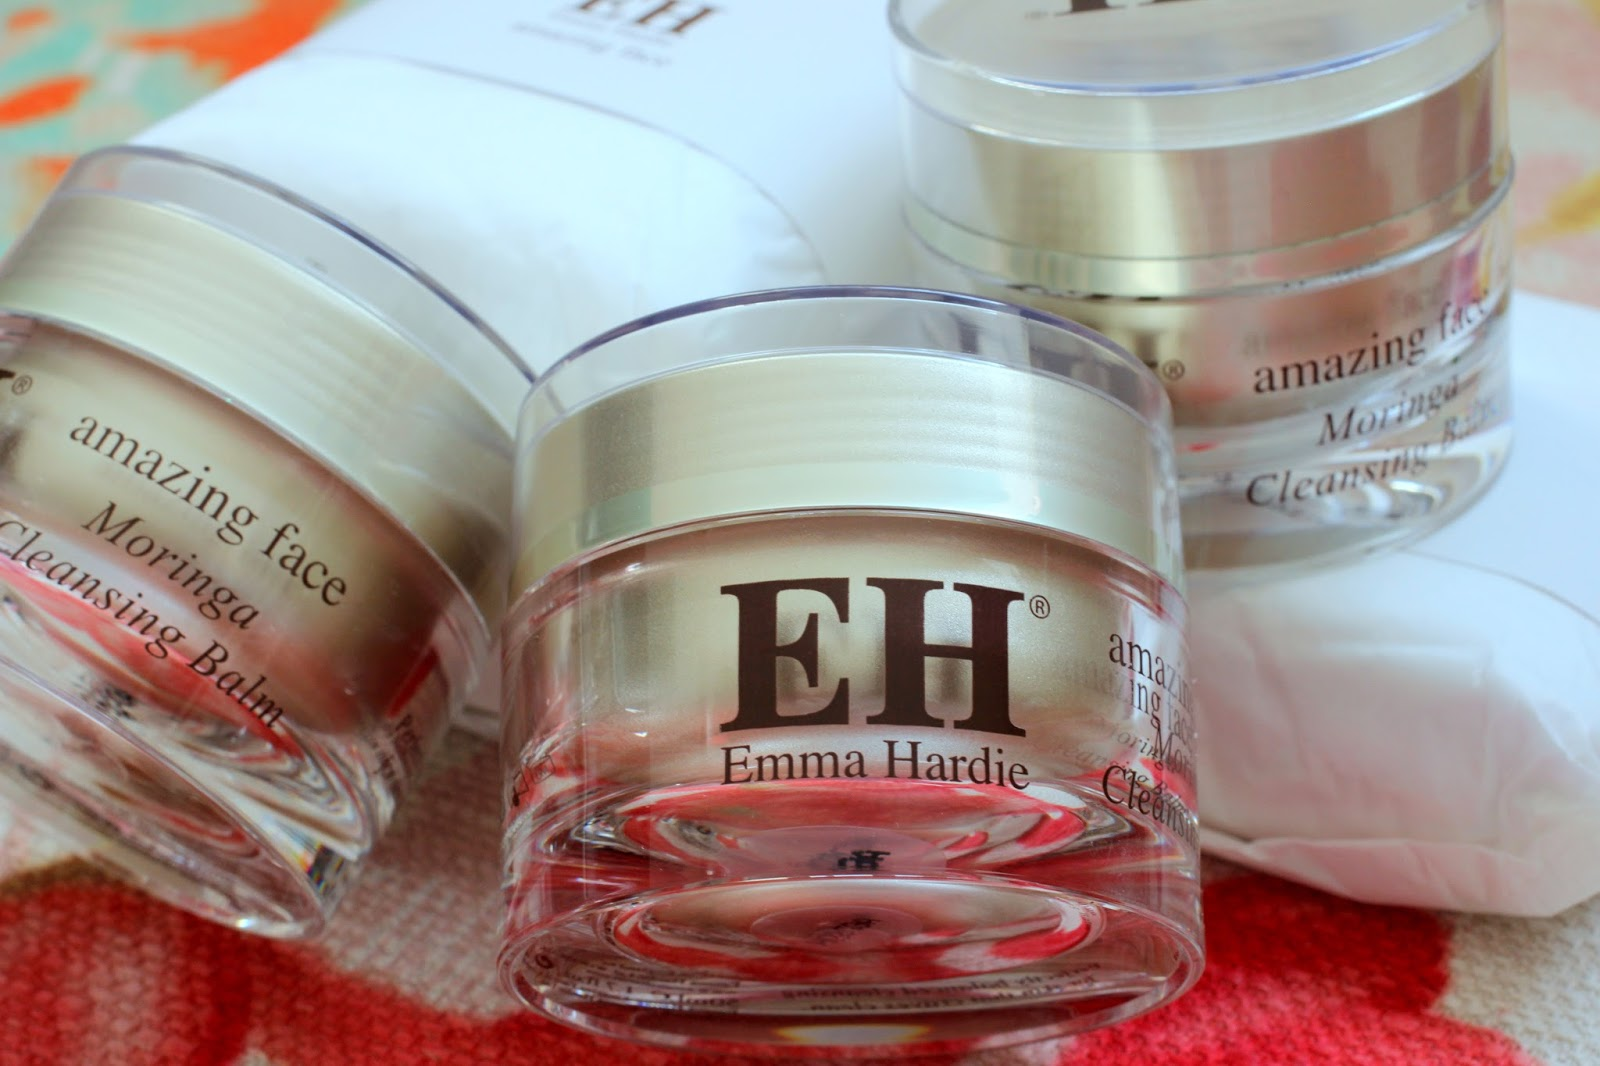 Emma Hardie Moringa Balm Set Review